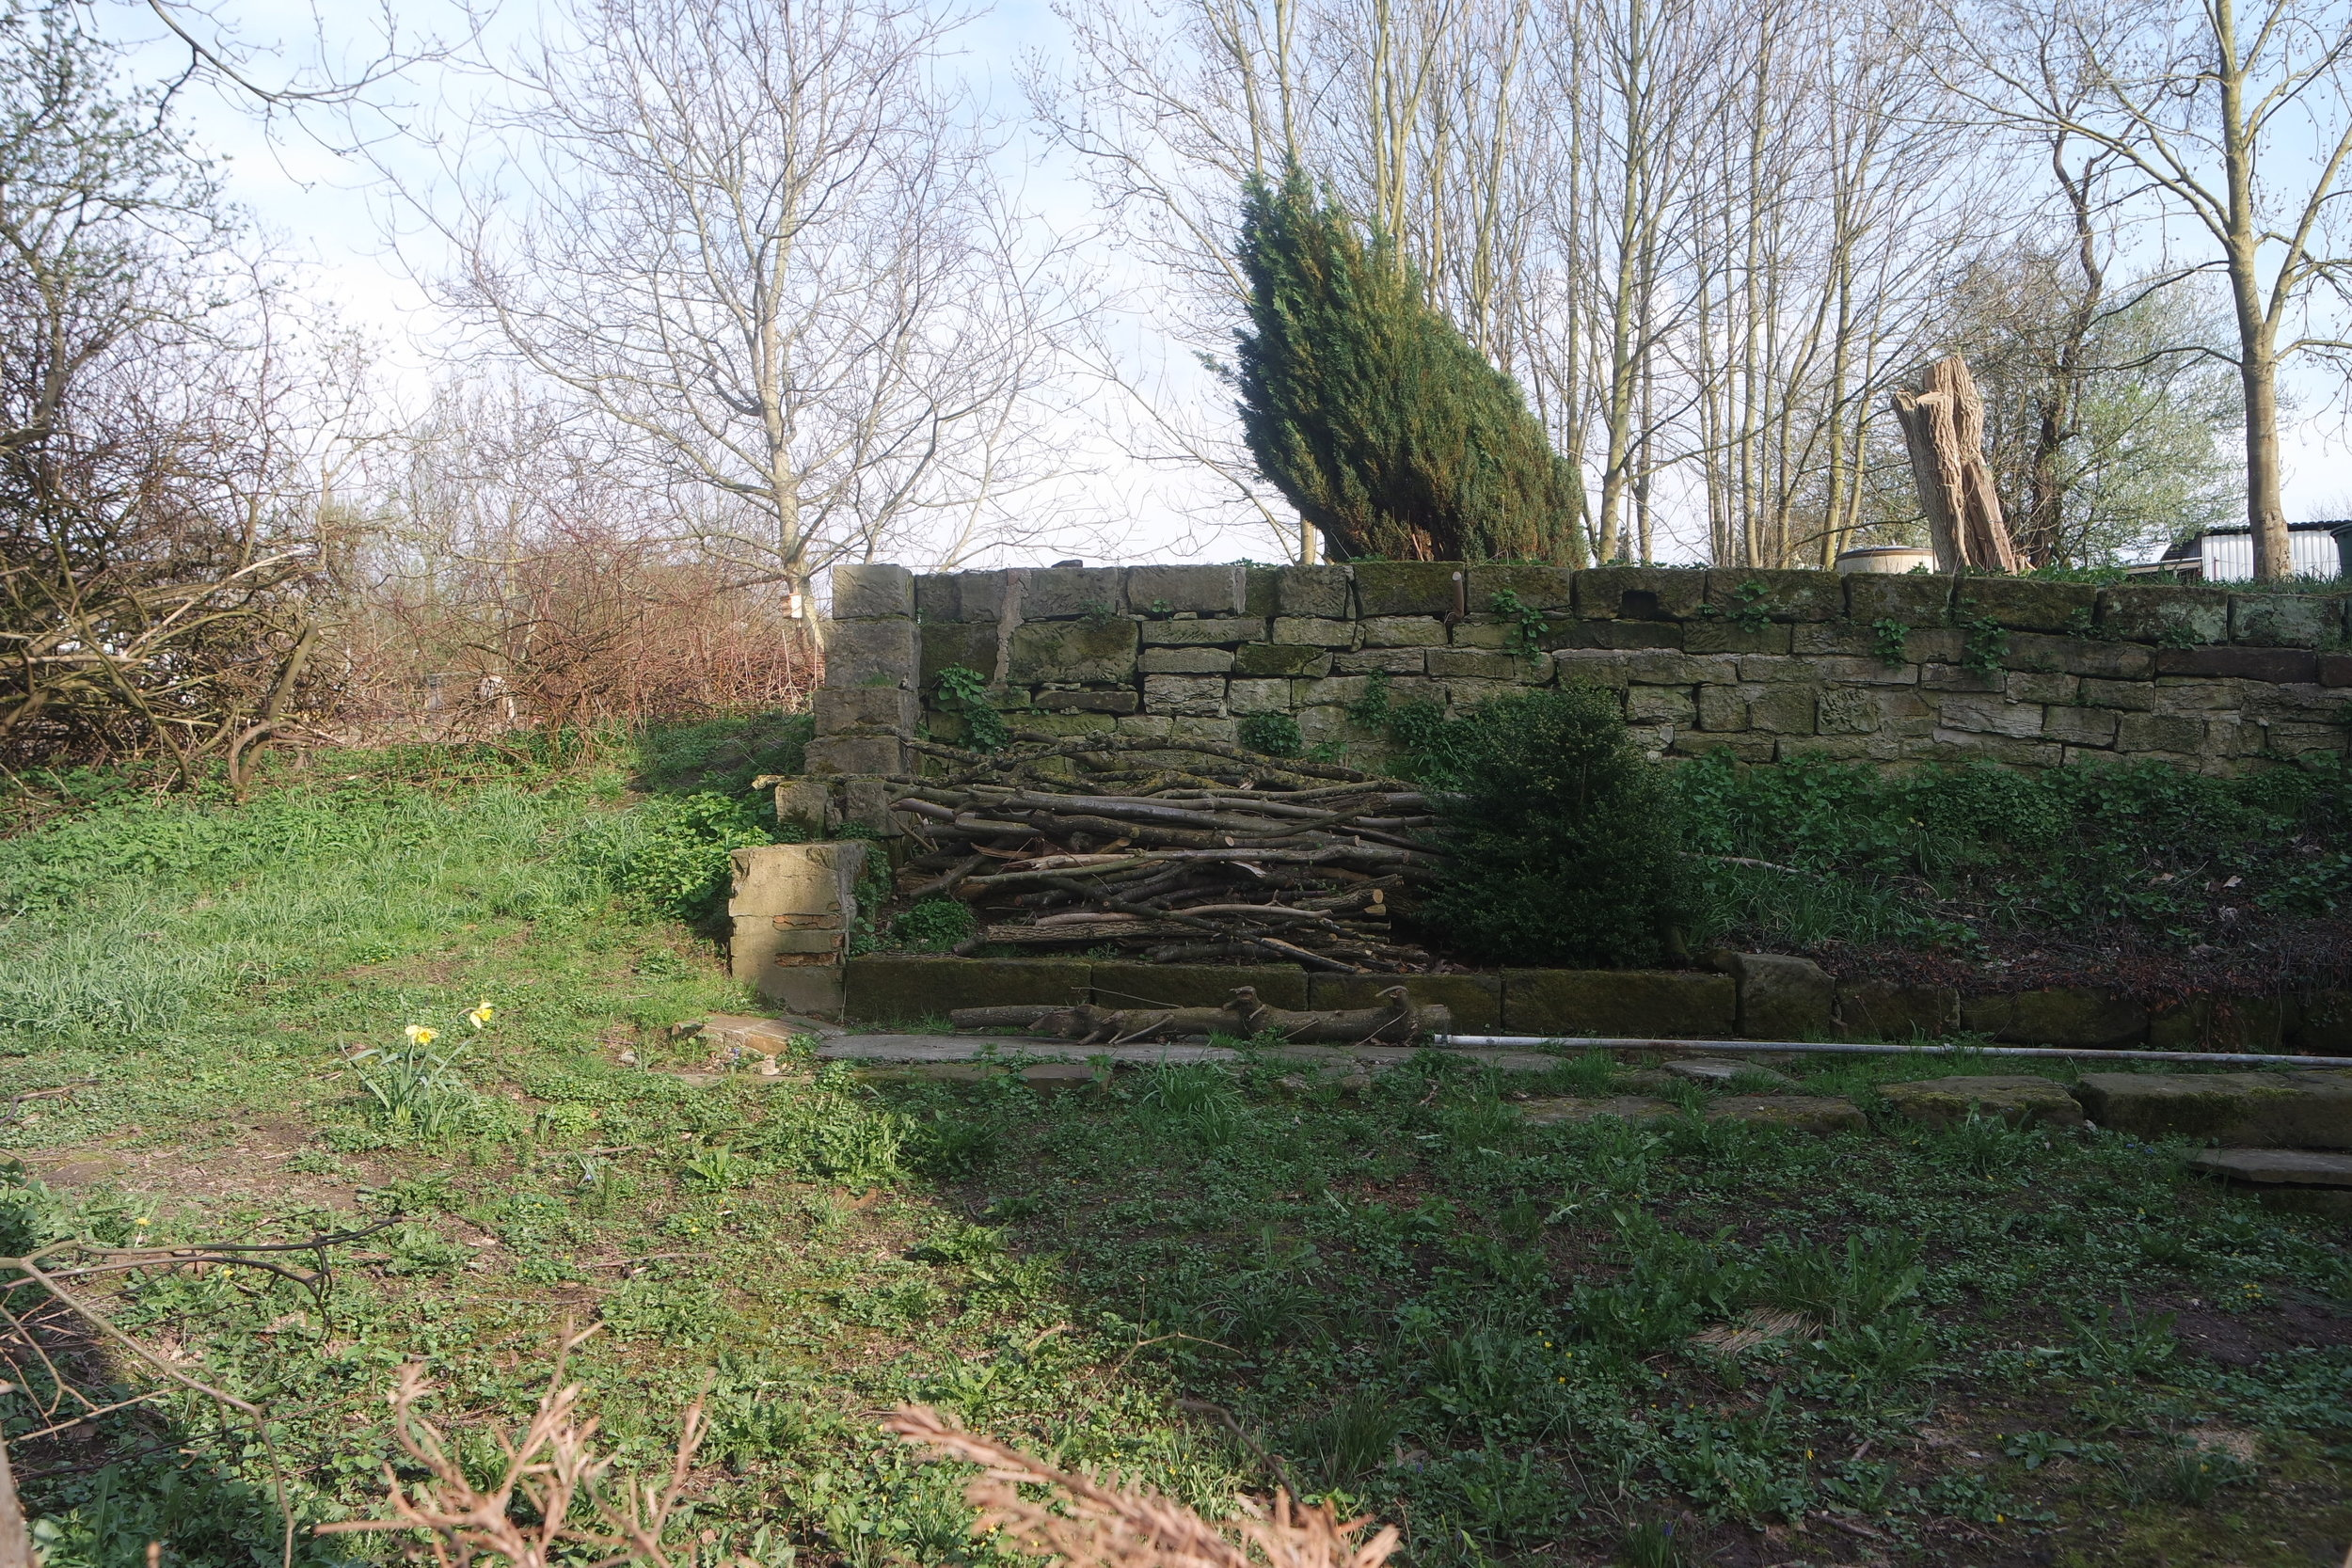 The natural stone wall is one of the eye catchers.